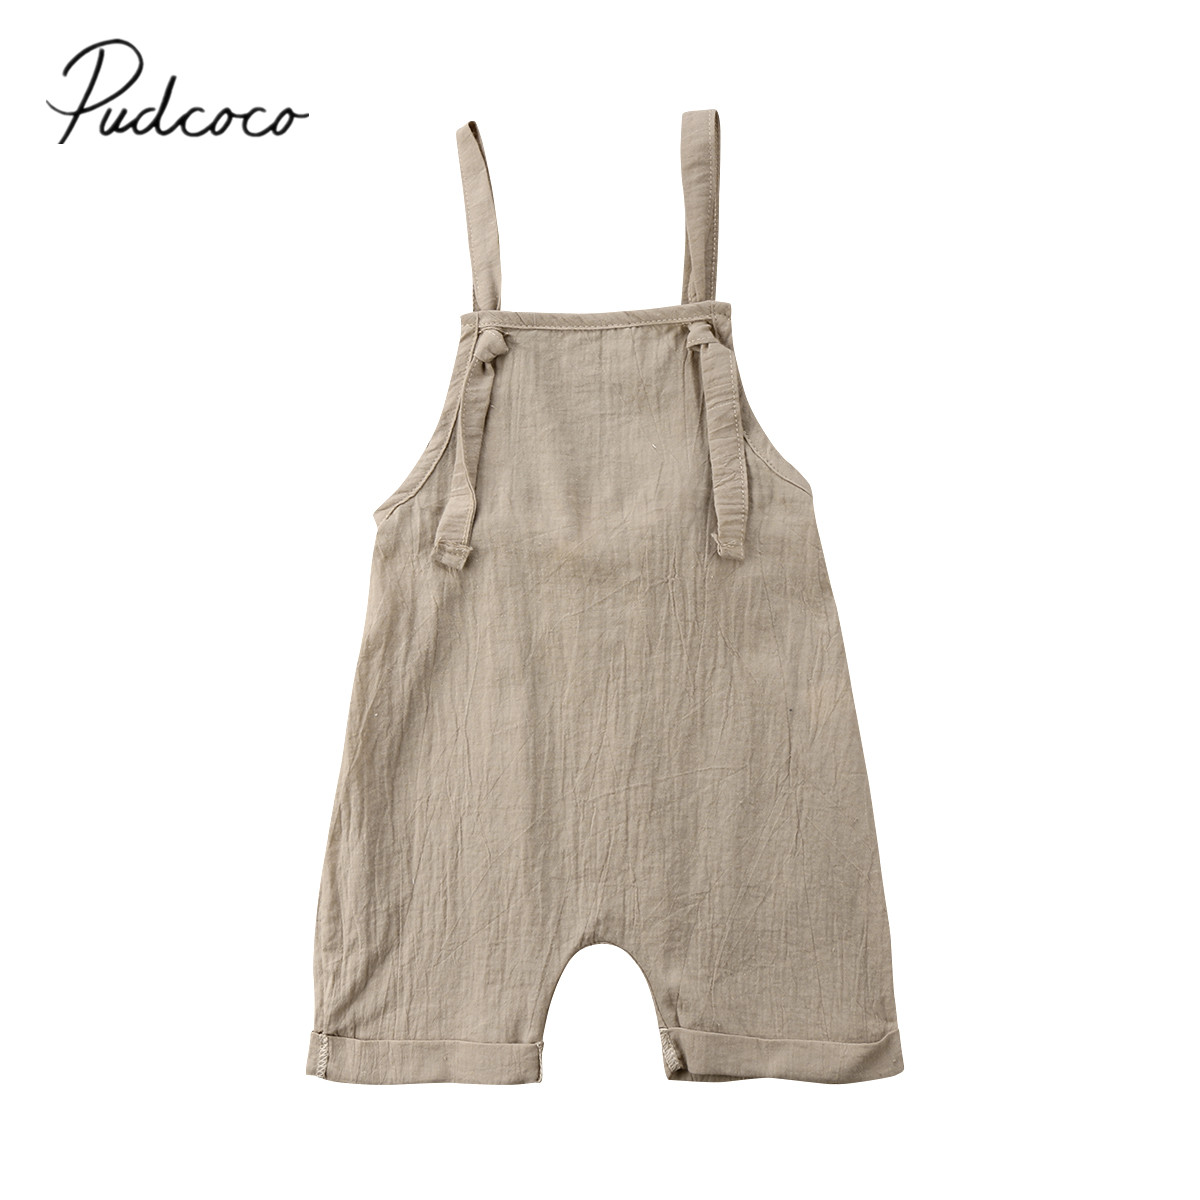 2018 Brand New Toddler Infant Newborn Kid Boy Girl Bib Pants Romper Jumpsuit Playsuit Outfit Solid Summer Clothes Wholesale 0-3T